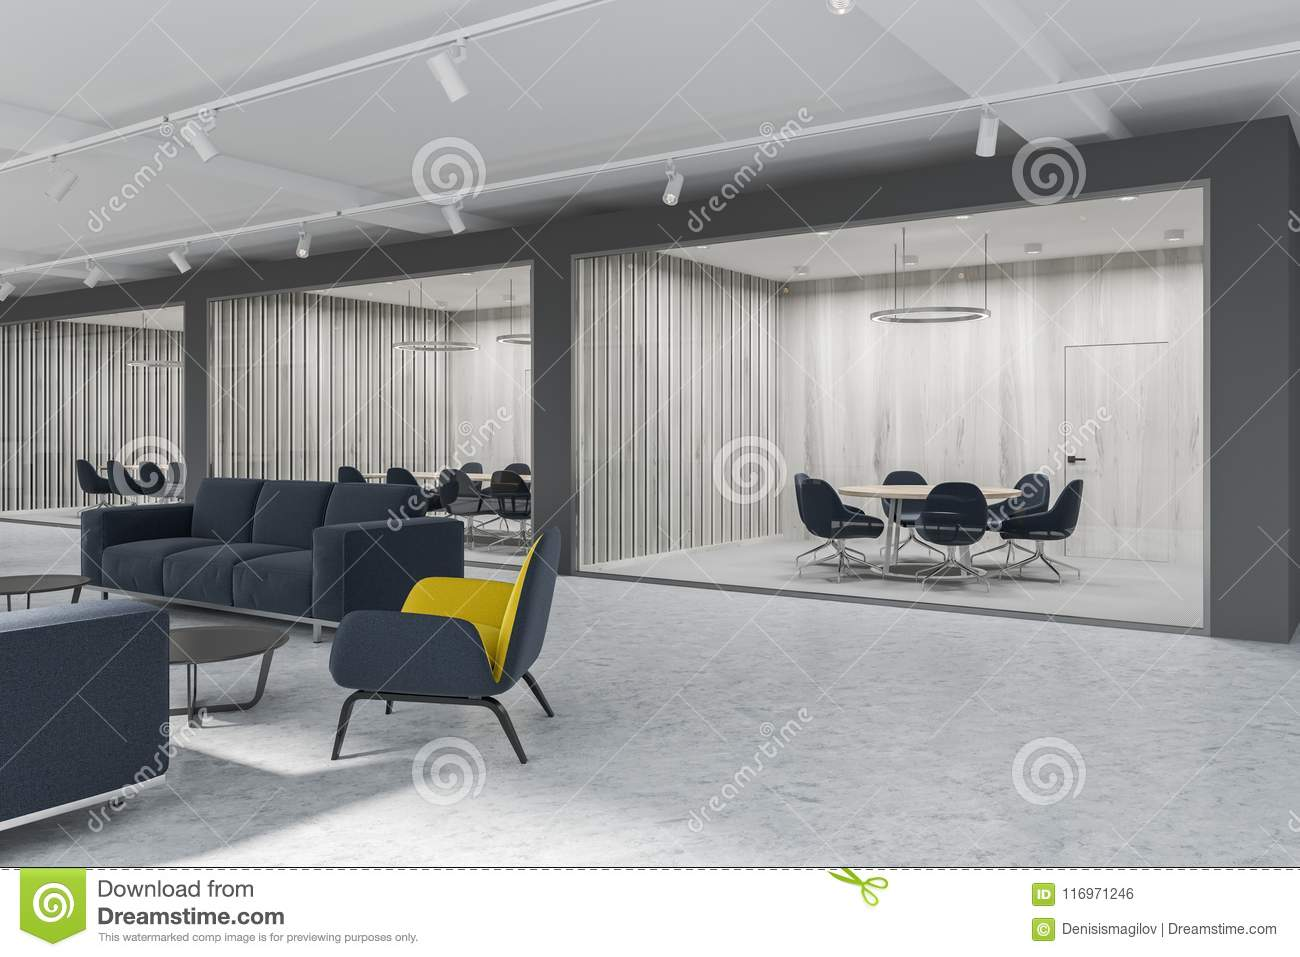 Yellow Armchairs Lobby Meeting Room Side View Stock Illustration Illustration Of Hall Area 116971246